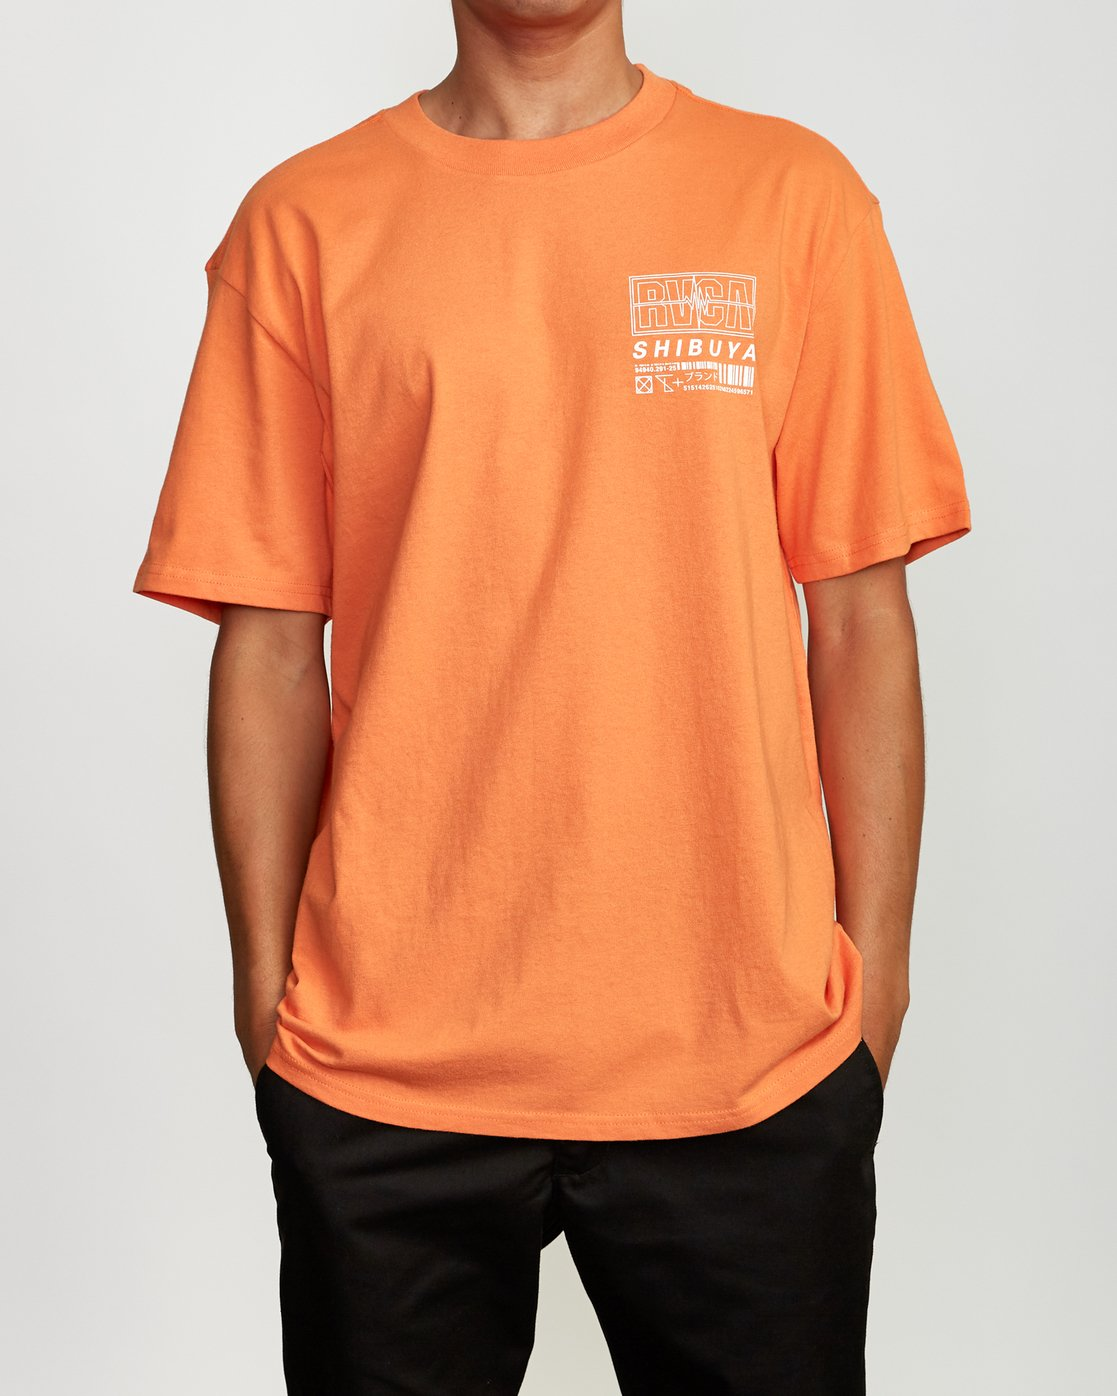 2 Super Shibuya T-Shirt Orange M410VRSS RVCA